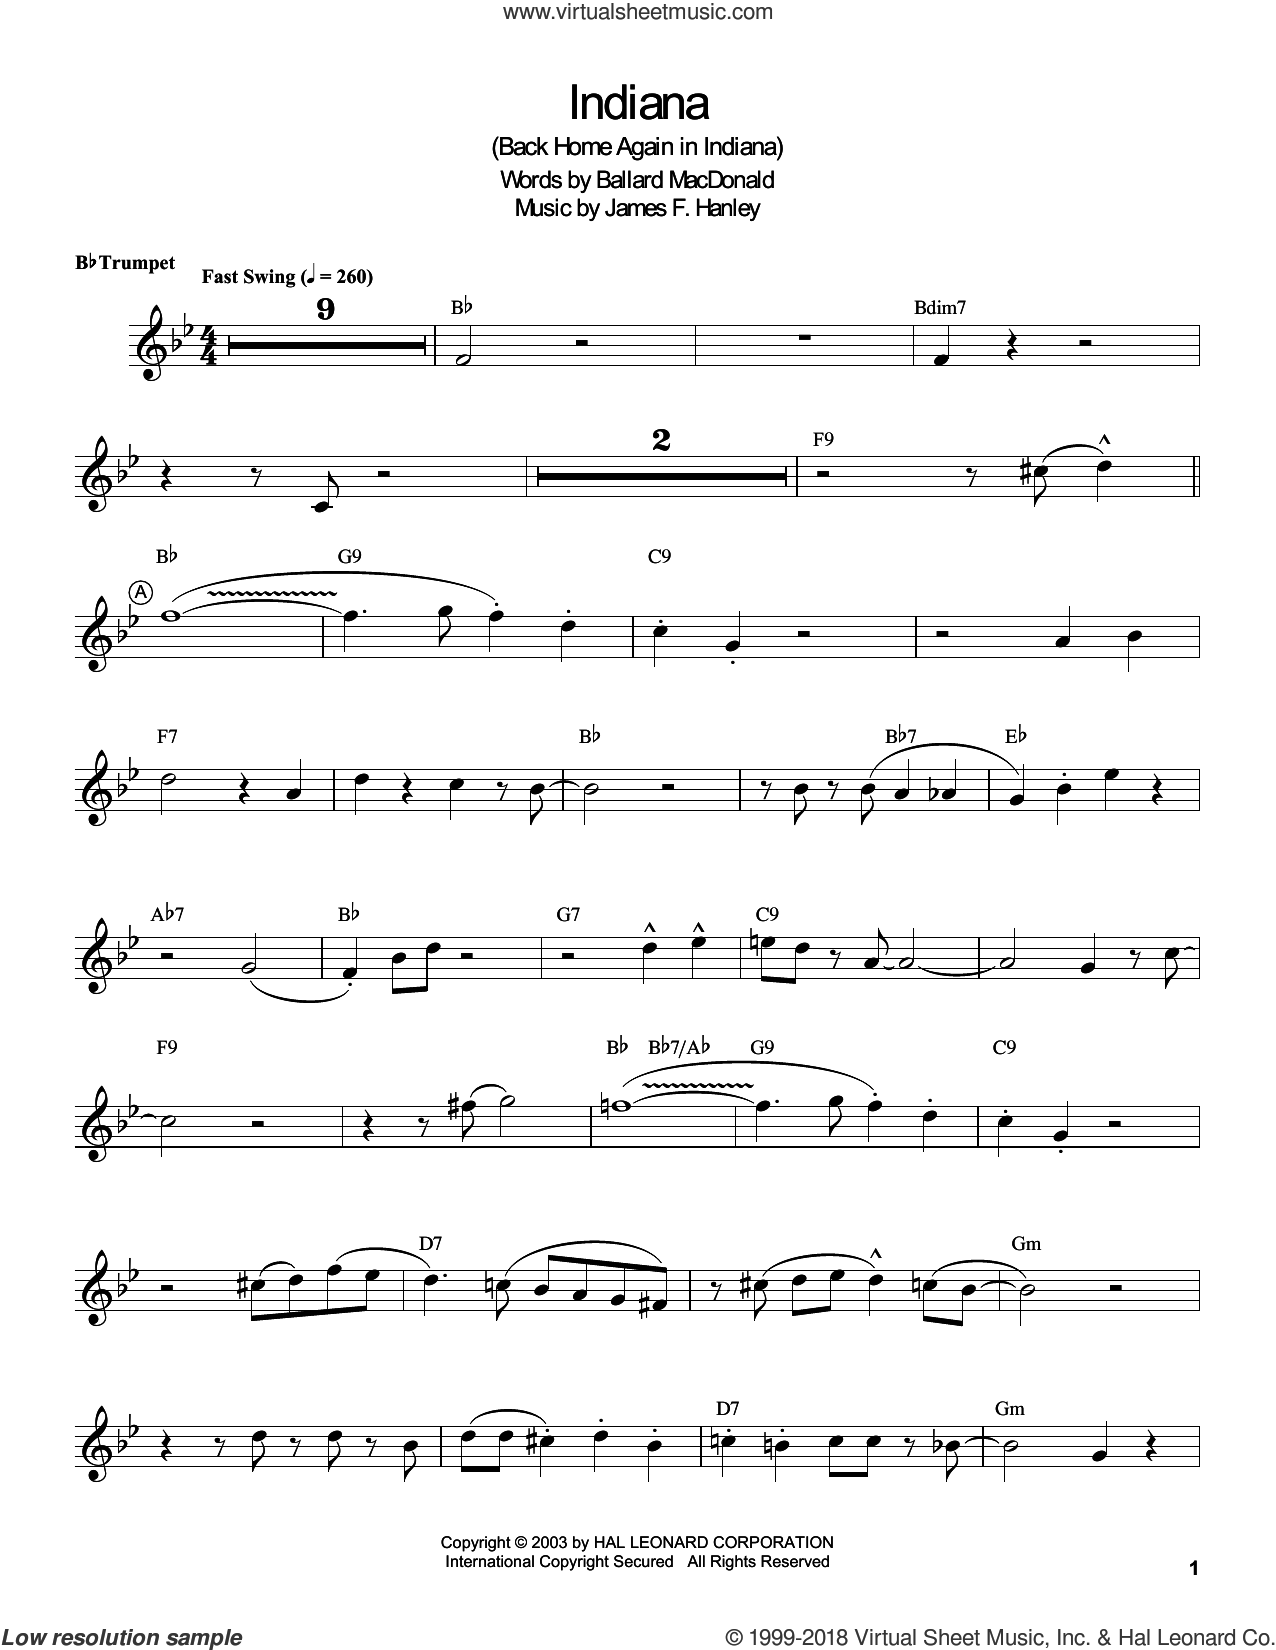 Indiana (Back Home Again In Indiana) sheet music for trumpet solo (transcription) by Louis Armstrong, Ballard MacDonald and James Hanley, intermediate trumpet (transcription)